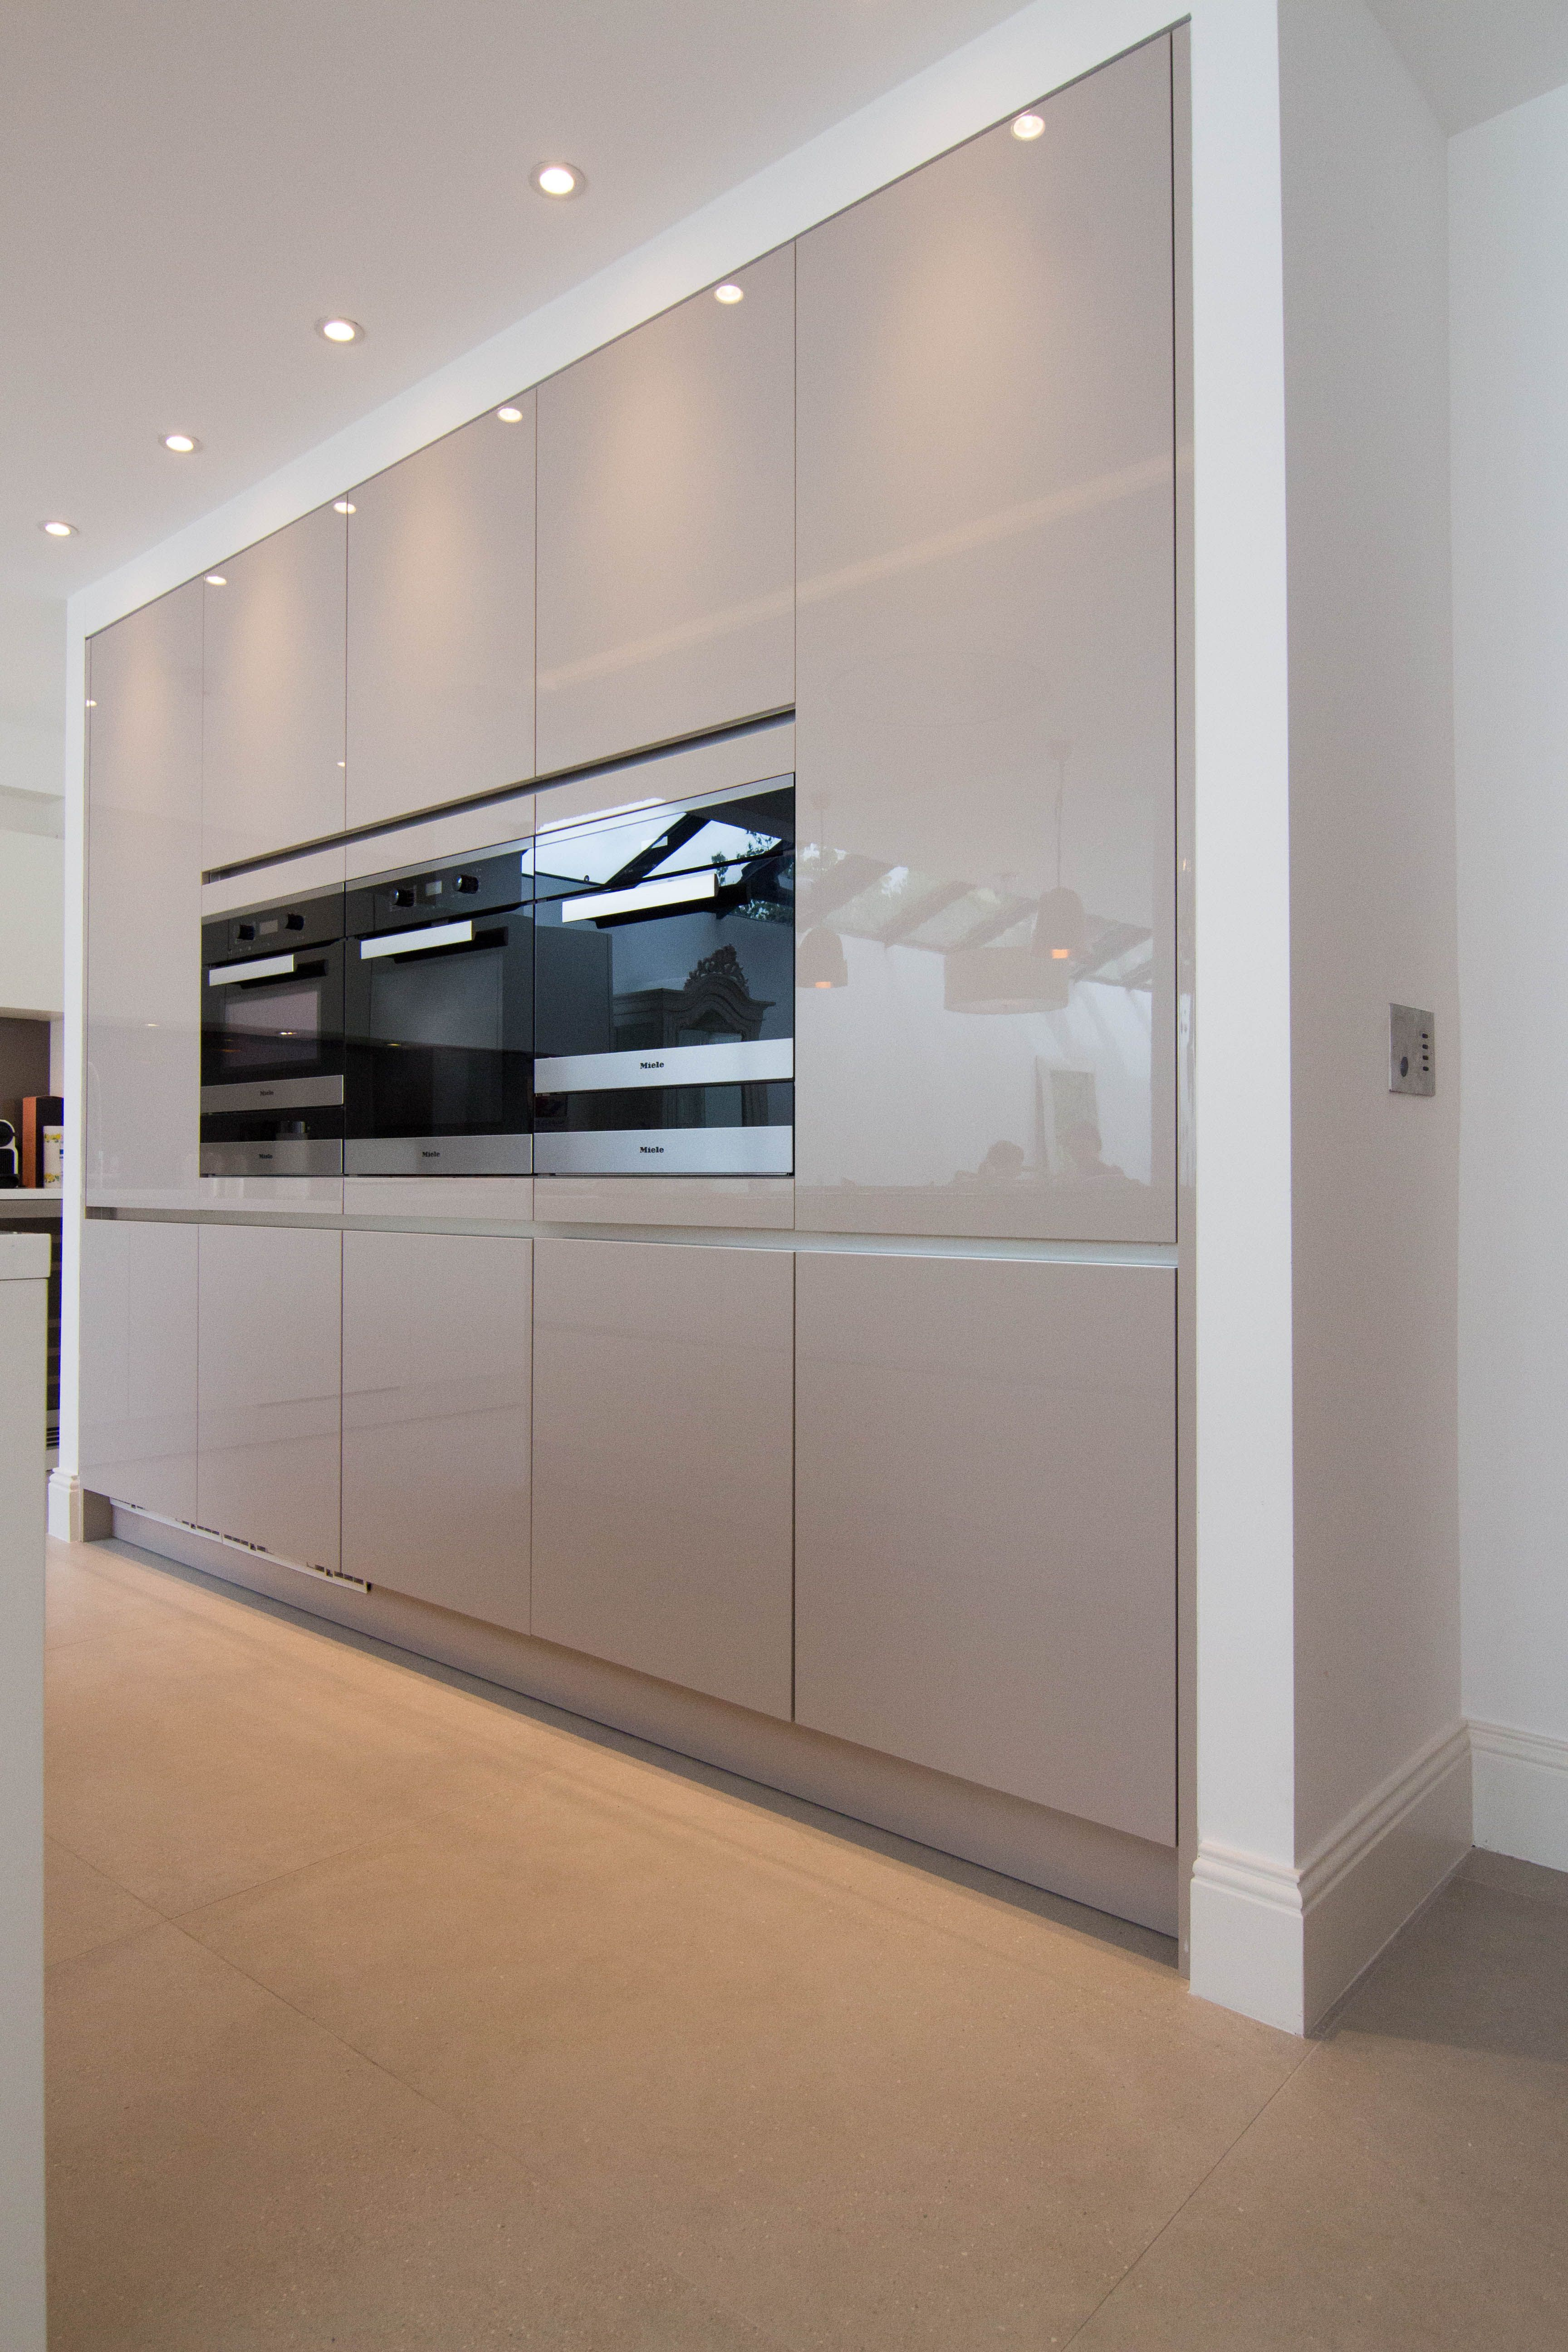 UNITS: Laser Soft - white Laser Brilliant - cashmere WORKTOP: Corian - Glacier White BREAKFAST BAR: Dekton - Aura SPLASHBACK: Glass in Mink colour APPLIANCES: Miele Email us or visit our showroom to discuss the best solution for your kitchen. We are always happy to help:)